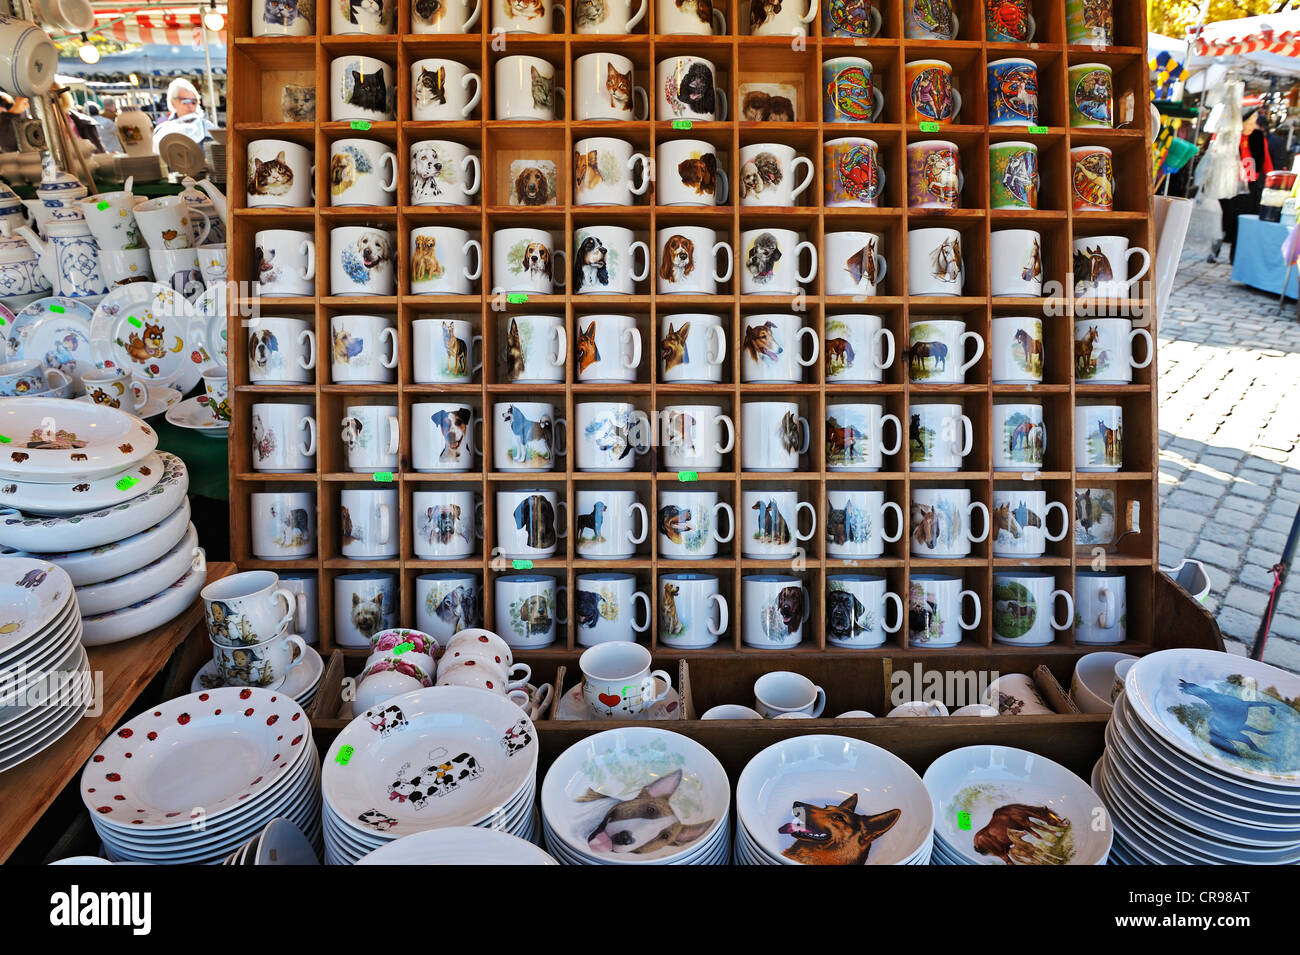 Cups and plates printed with animal motifs, Auer Dult market, Munich, Bavaria, Germany, Europe - Stock Image